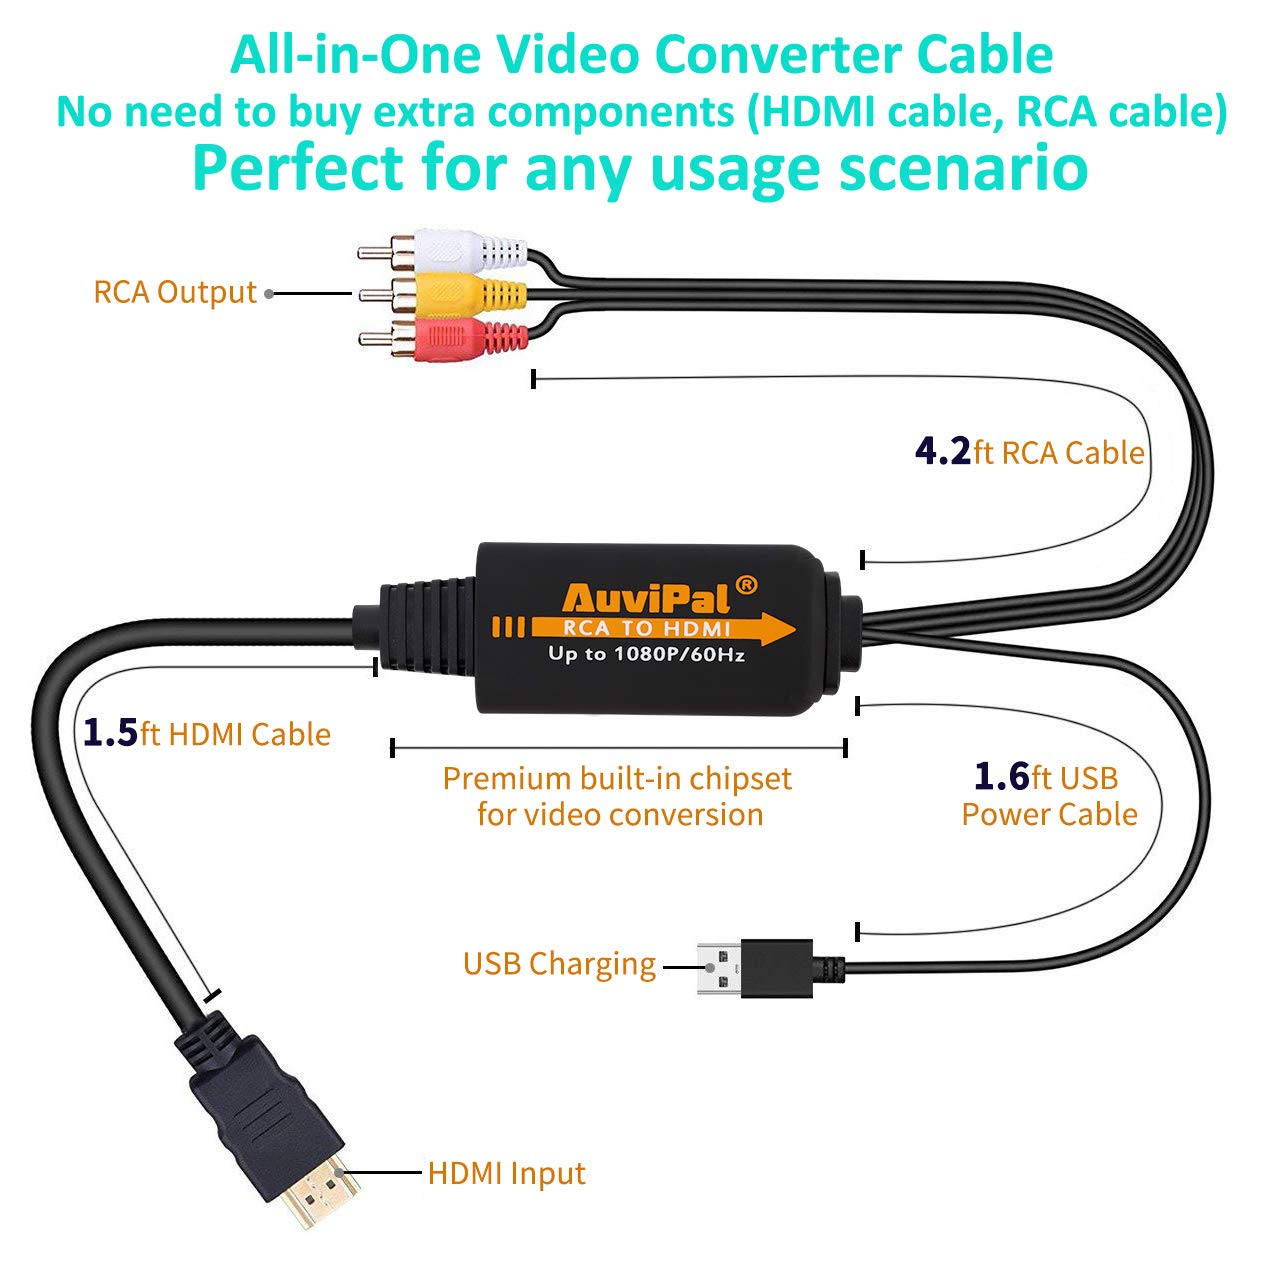 1080P RCA to HDMI Converter Cable, AuviPal AV to HDMI Adapter for Playing VHS/VCR/DVD Player/Game Consoles etc on Modern TV. All-in-One 3RCA Composite AV to HDMI Video Converter by AuviPal (Image #6)